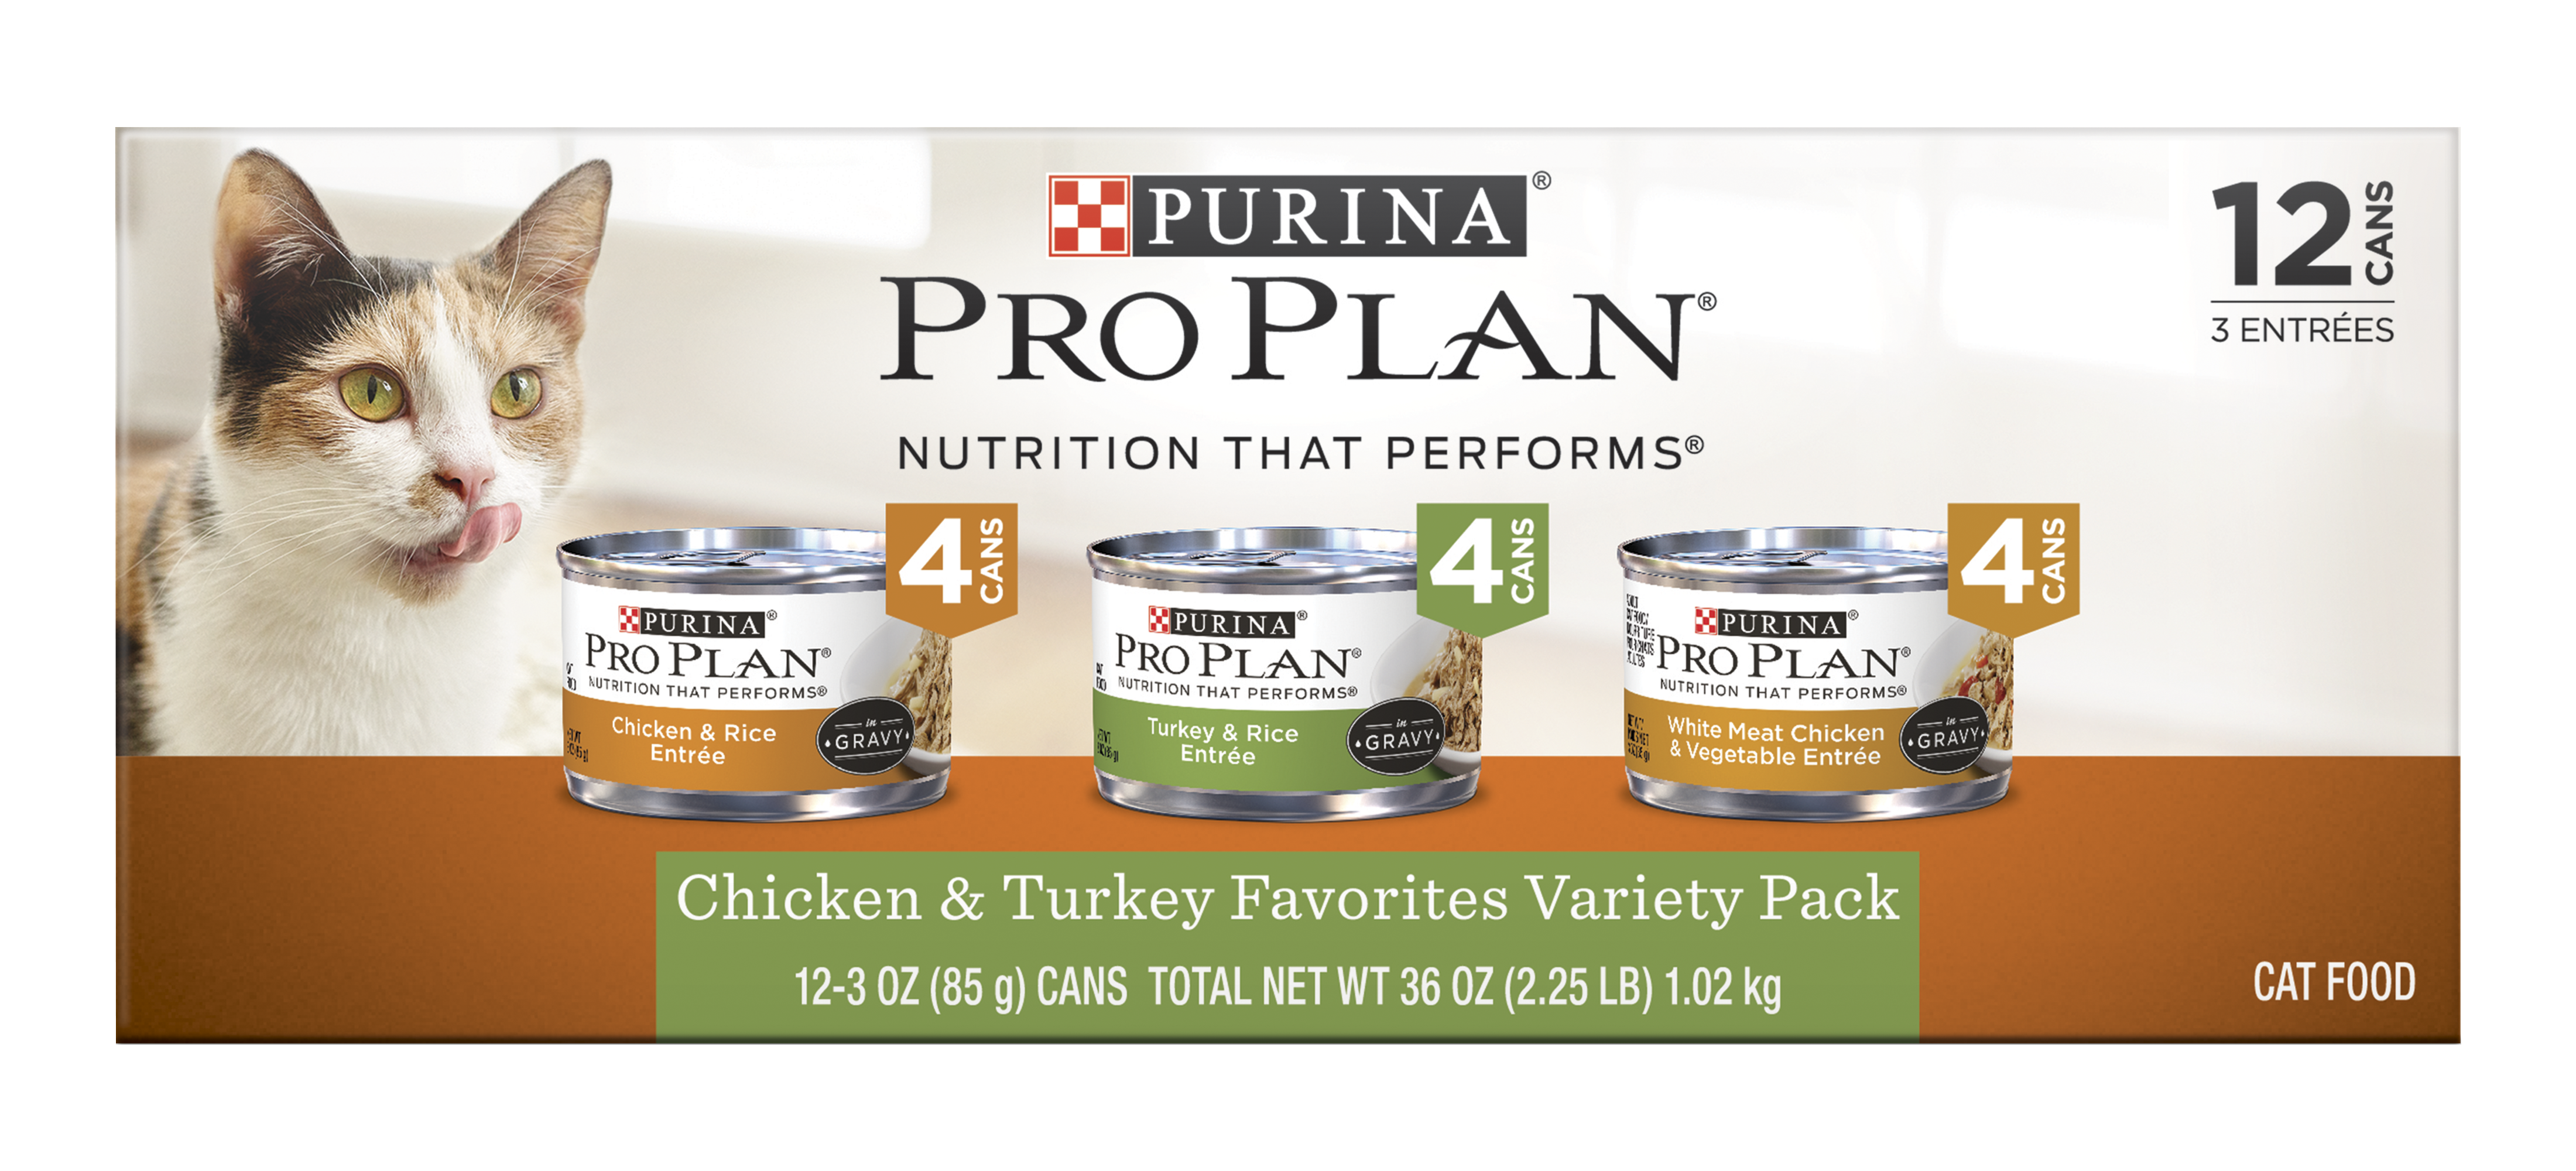 Pro Plan Chicken & Turkey Cat Food Variety Pack